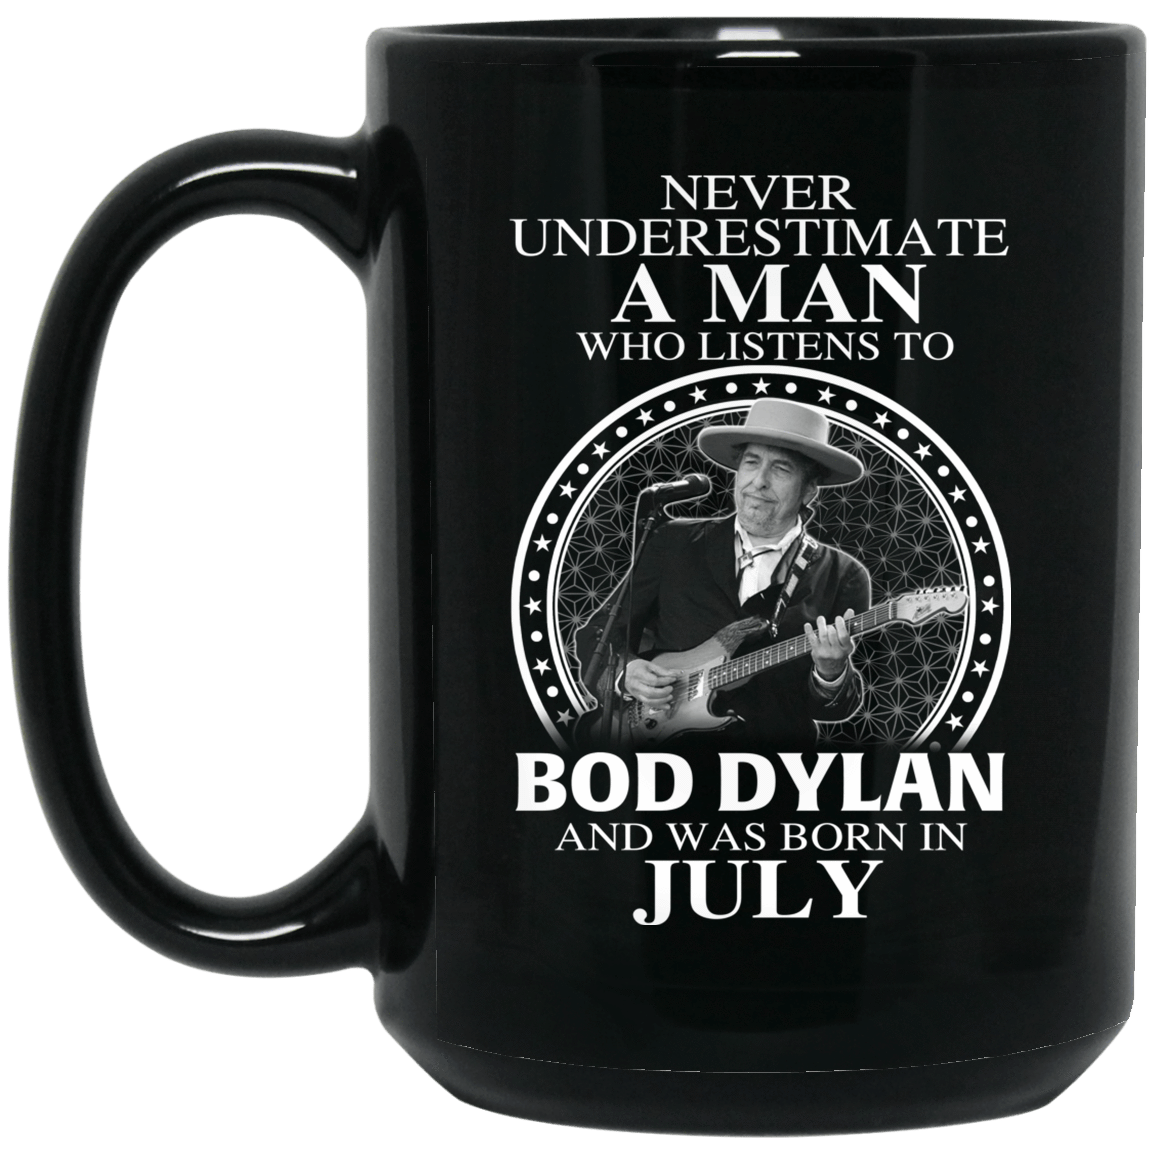 A Man Who Listens To Bob Dylan And Was Born In July Mug 1066-10182-76154696-49311 - Tee Ript